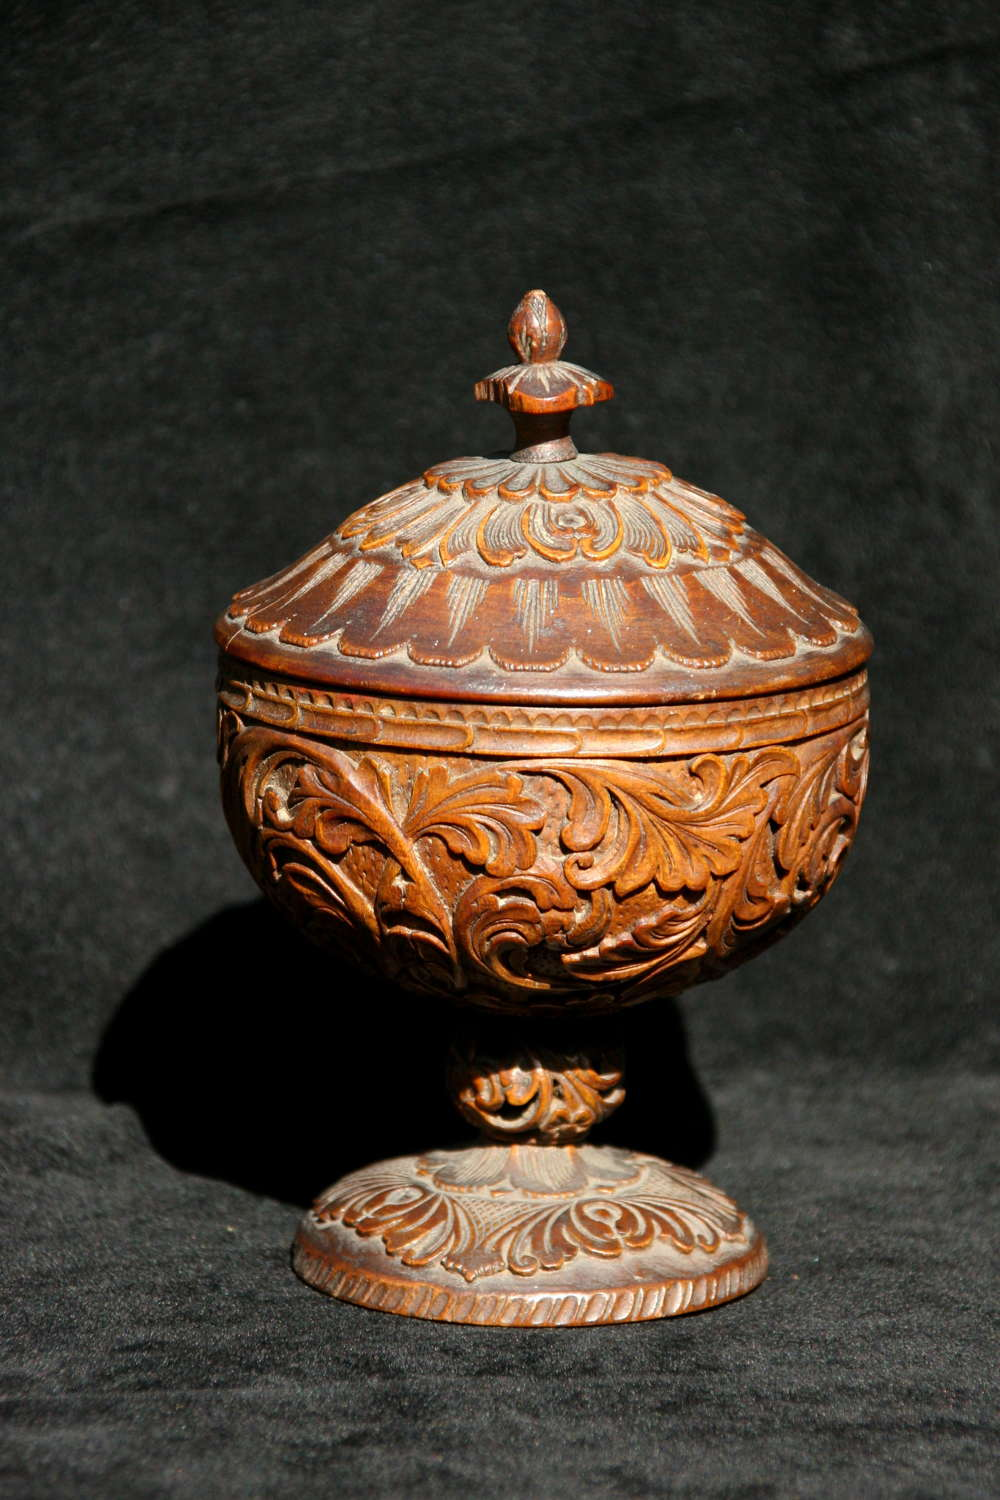 Treen Scandinavian Cup and Cover 19th century